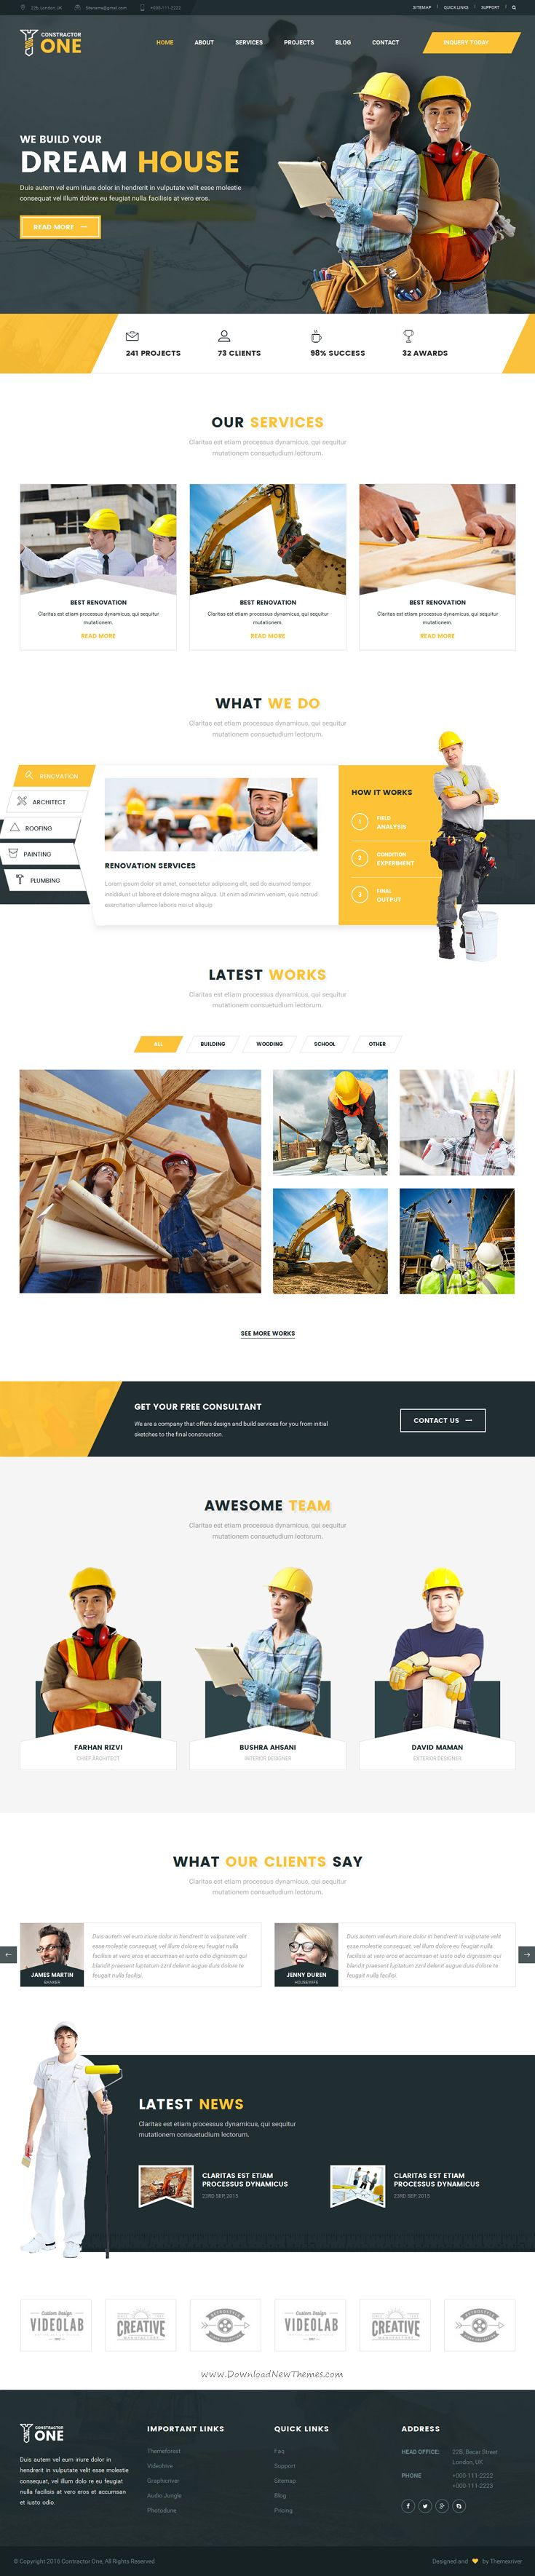 Constractor One Construction & Home Renovation HTML5 bootstrap Template download now.